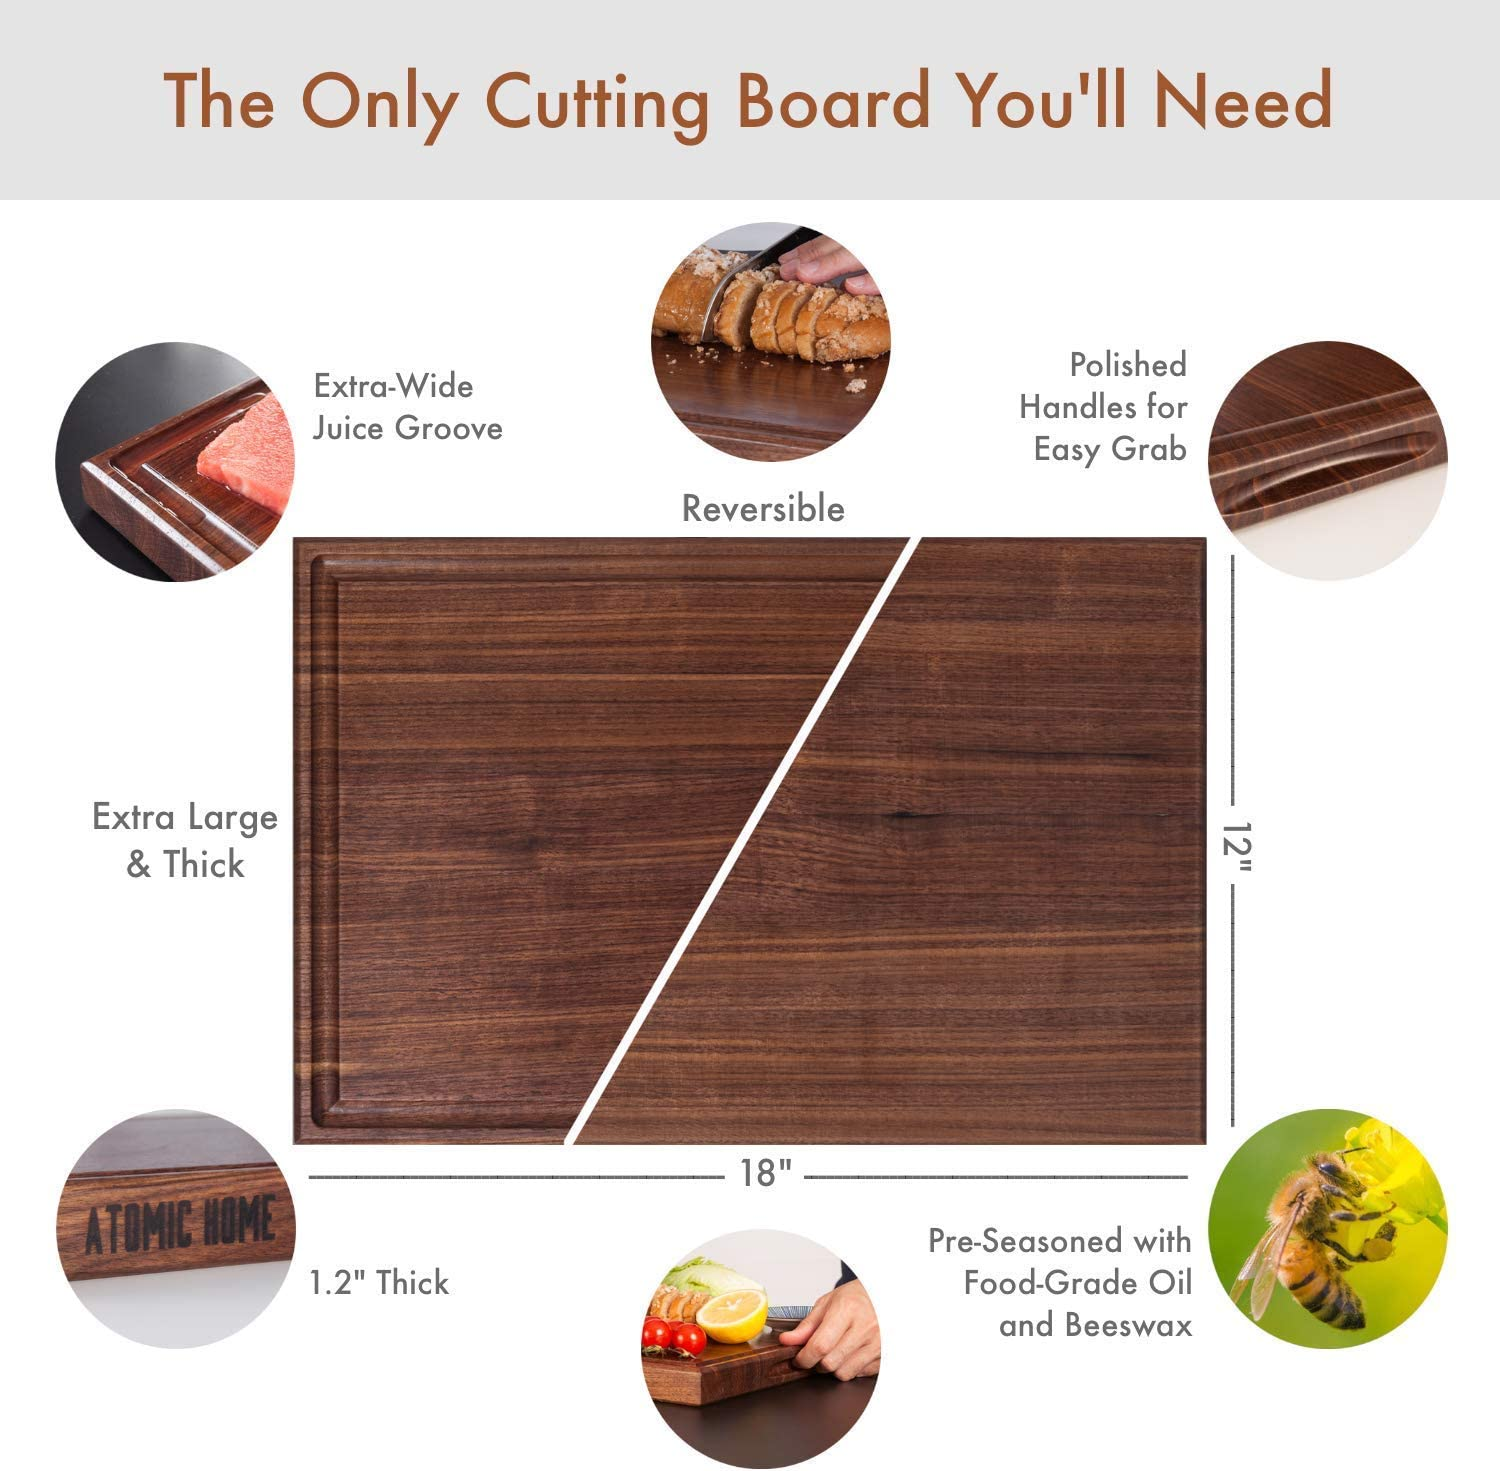 Wood Cutting Board Large Maple 18x12 Inch Reversible with Handles and Juice Groove Thick Butcher Block Chopping Board Carving Cheese Charcuterie Serving Handmade by AtoHom